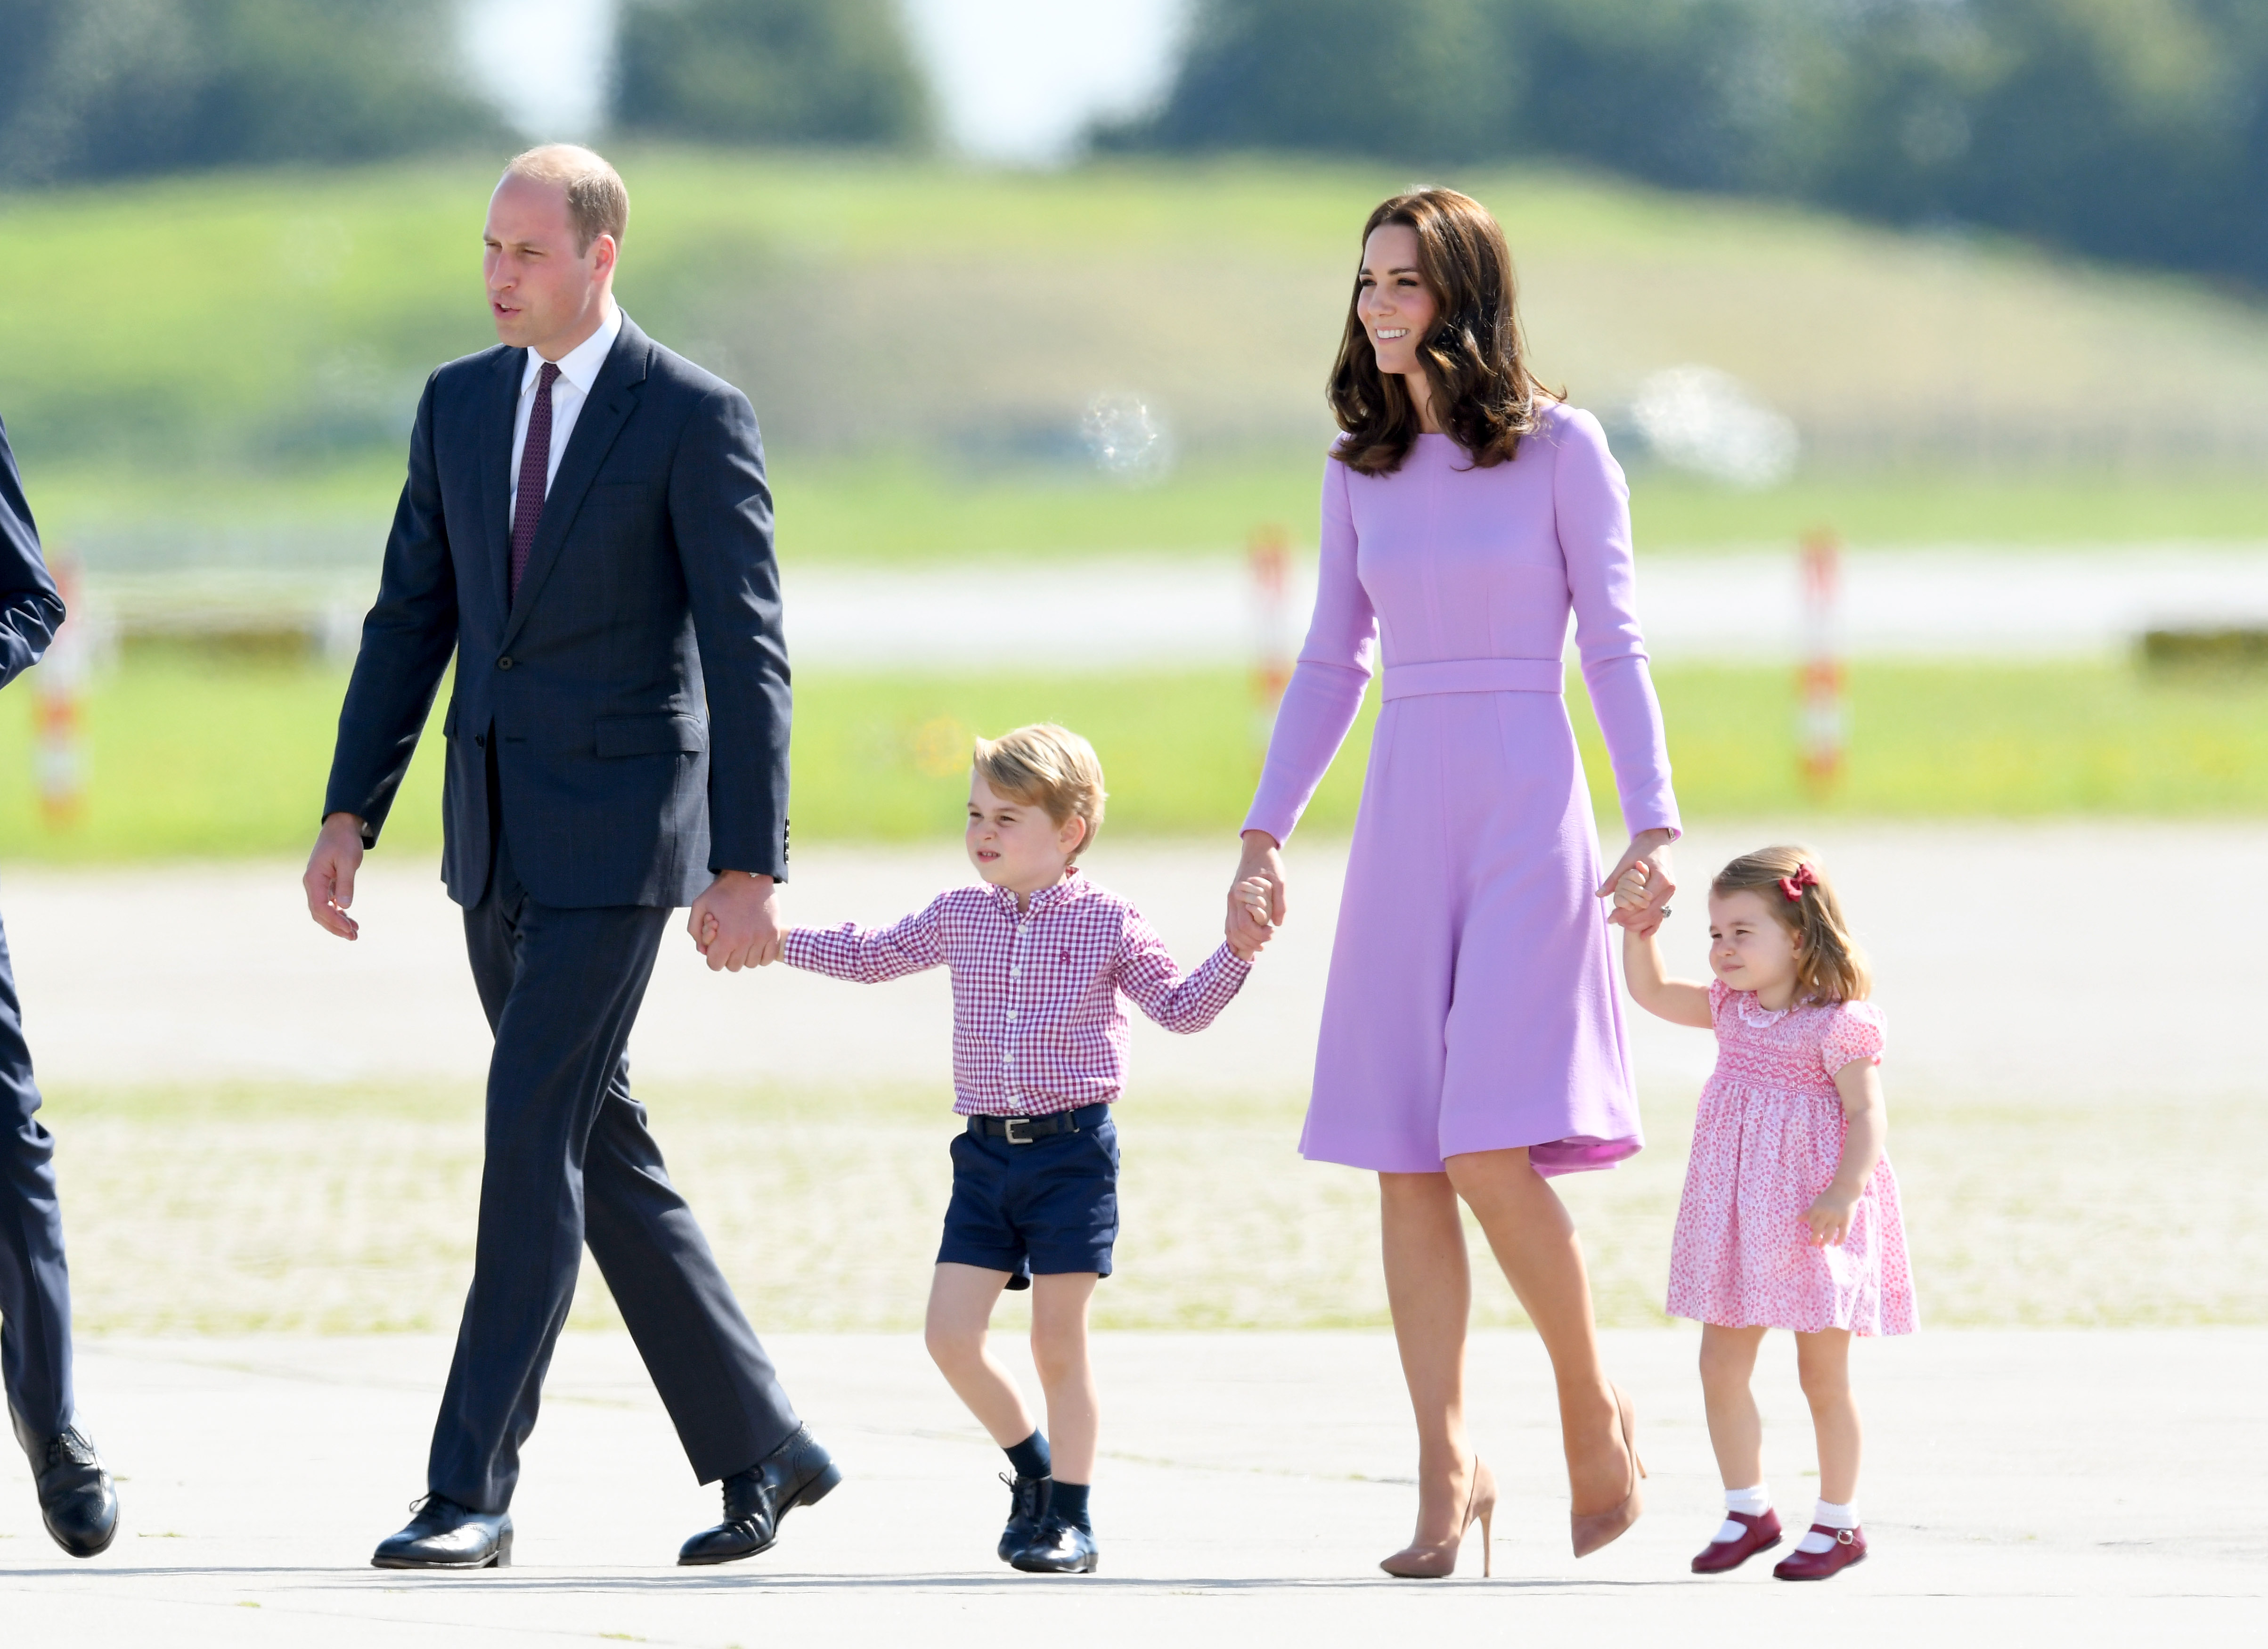 HAMBURG, GERMANY - JULY 21:  Prince William, Duke of Cambridge, Prince George, Princess Charlotte of Cambridge and Catherine, Duchess of Cambridge view helicopter models H145 and H135 before departing from Hamburg airport on the last day of their official visit to Poland and Germany on July 21, 2017 in Hamburg, Germany.  (Photo by Karwai Tang/WireImage)